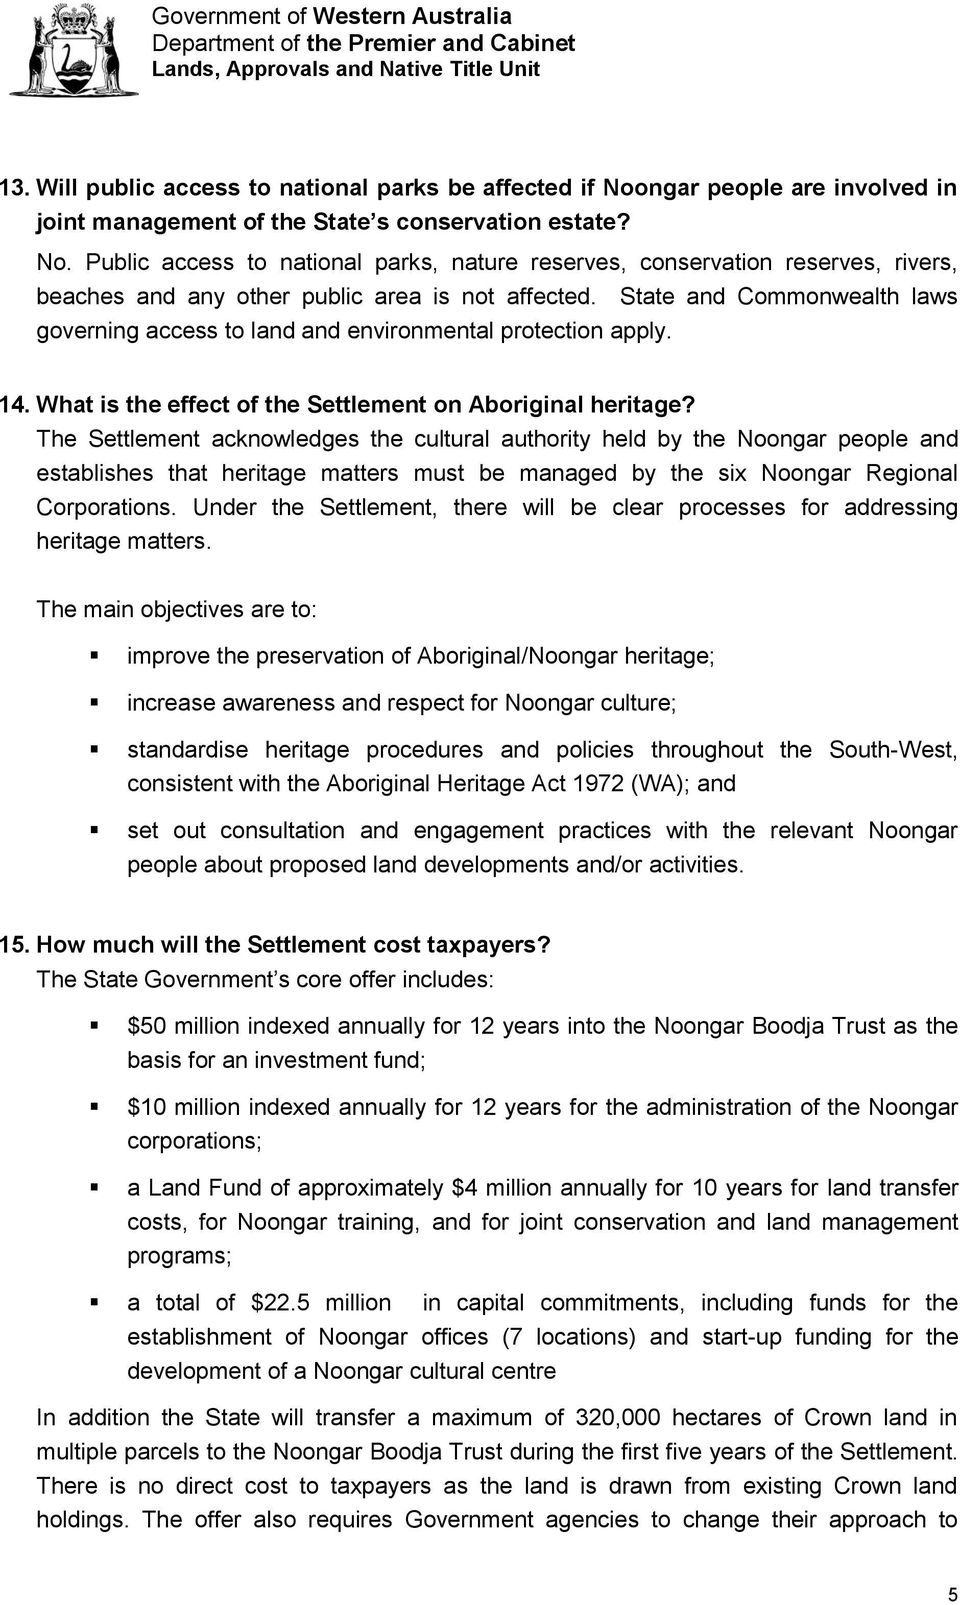 The Settlement acknowledges the cultural authority held by the Noongar people and establishes that heritage matters must be managed by the six Noongar Regional Corporations.